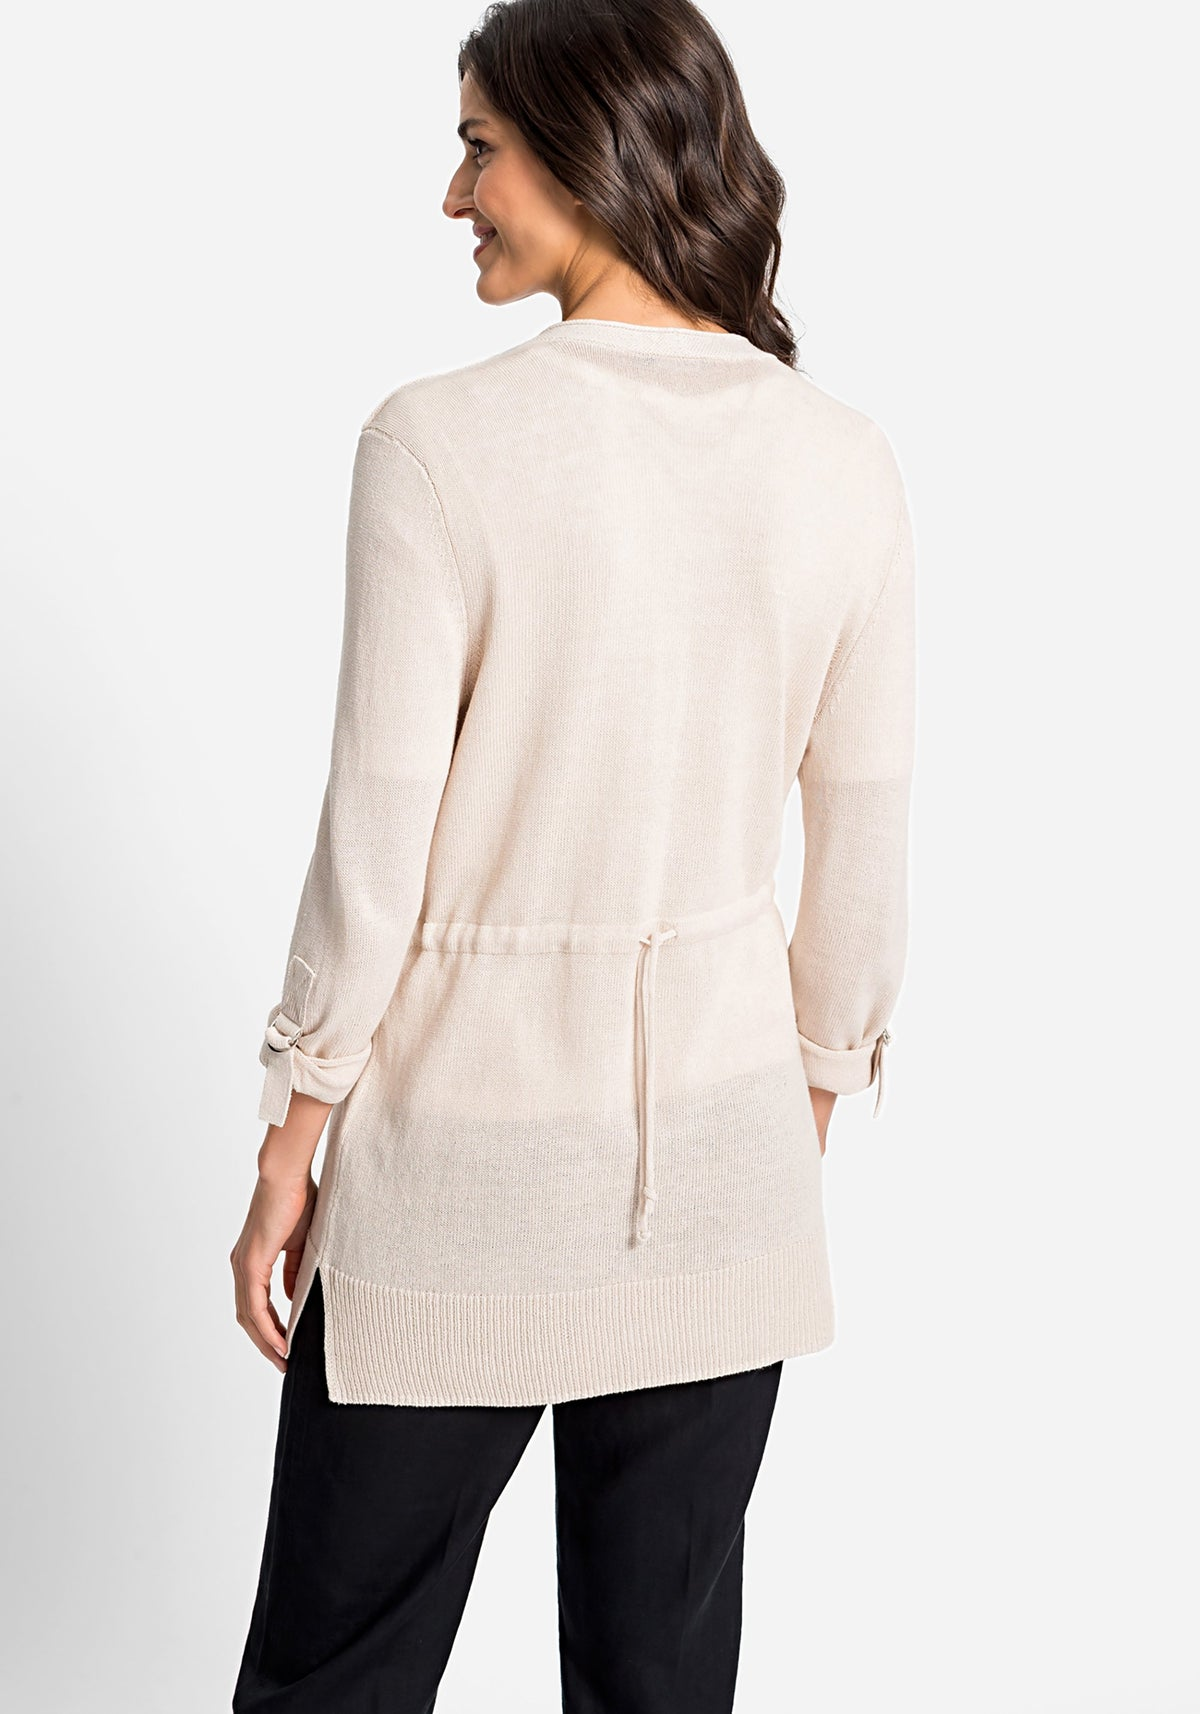 Long Line Open Front Cardigan with Roll Tab Sleeve Detail